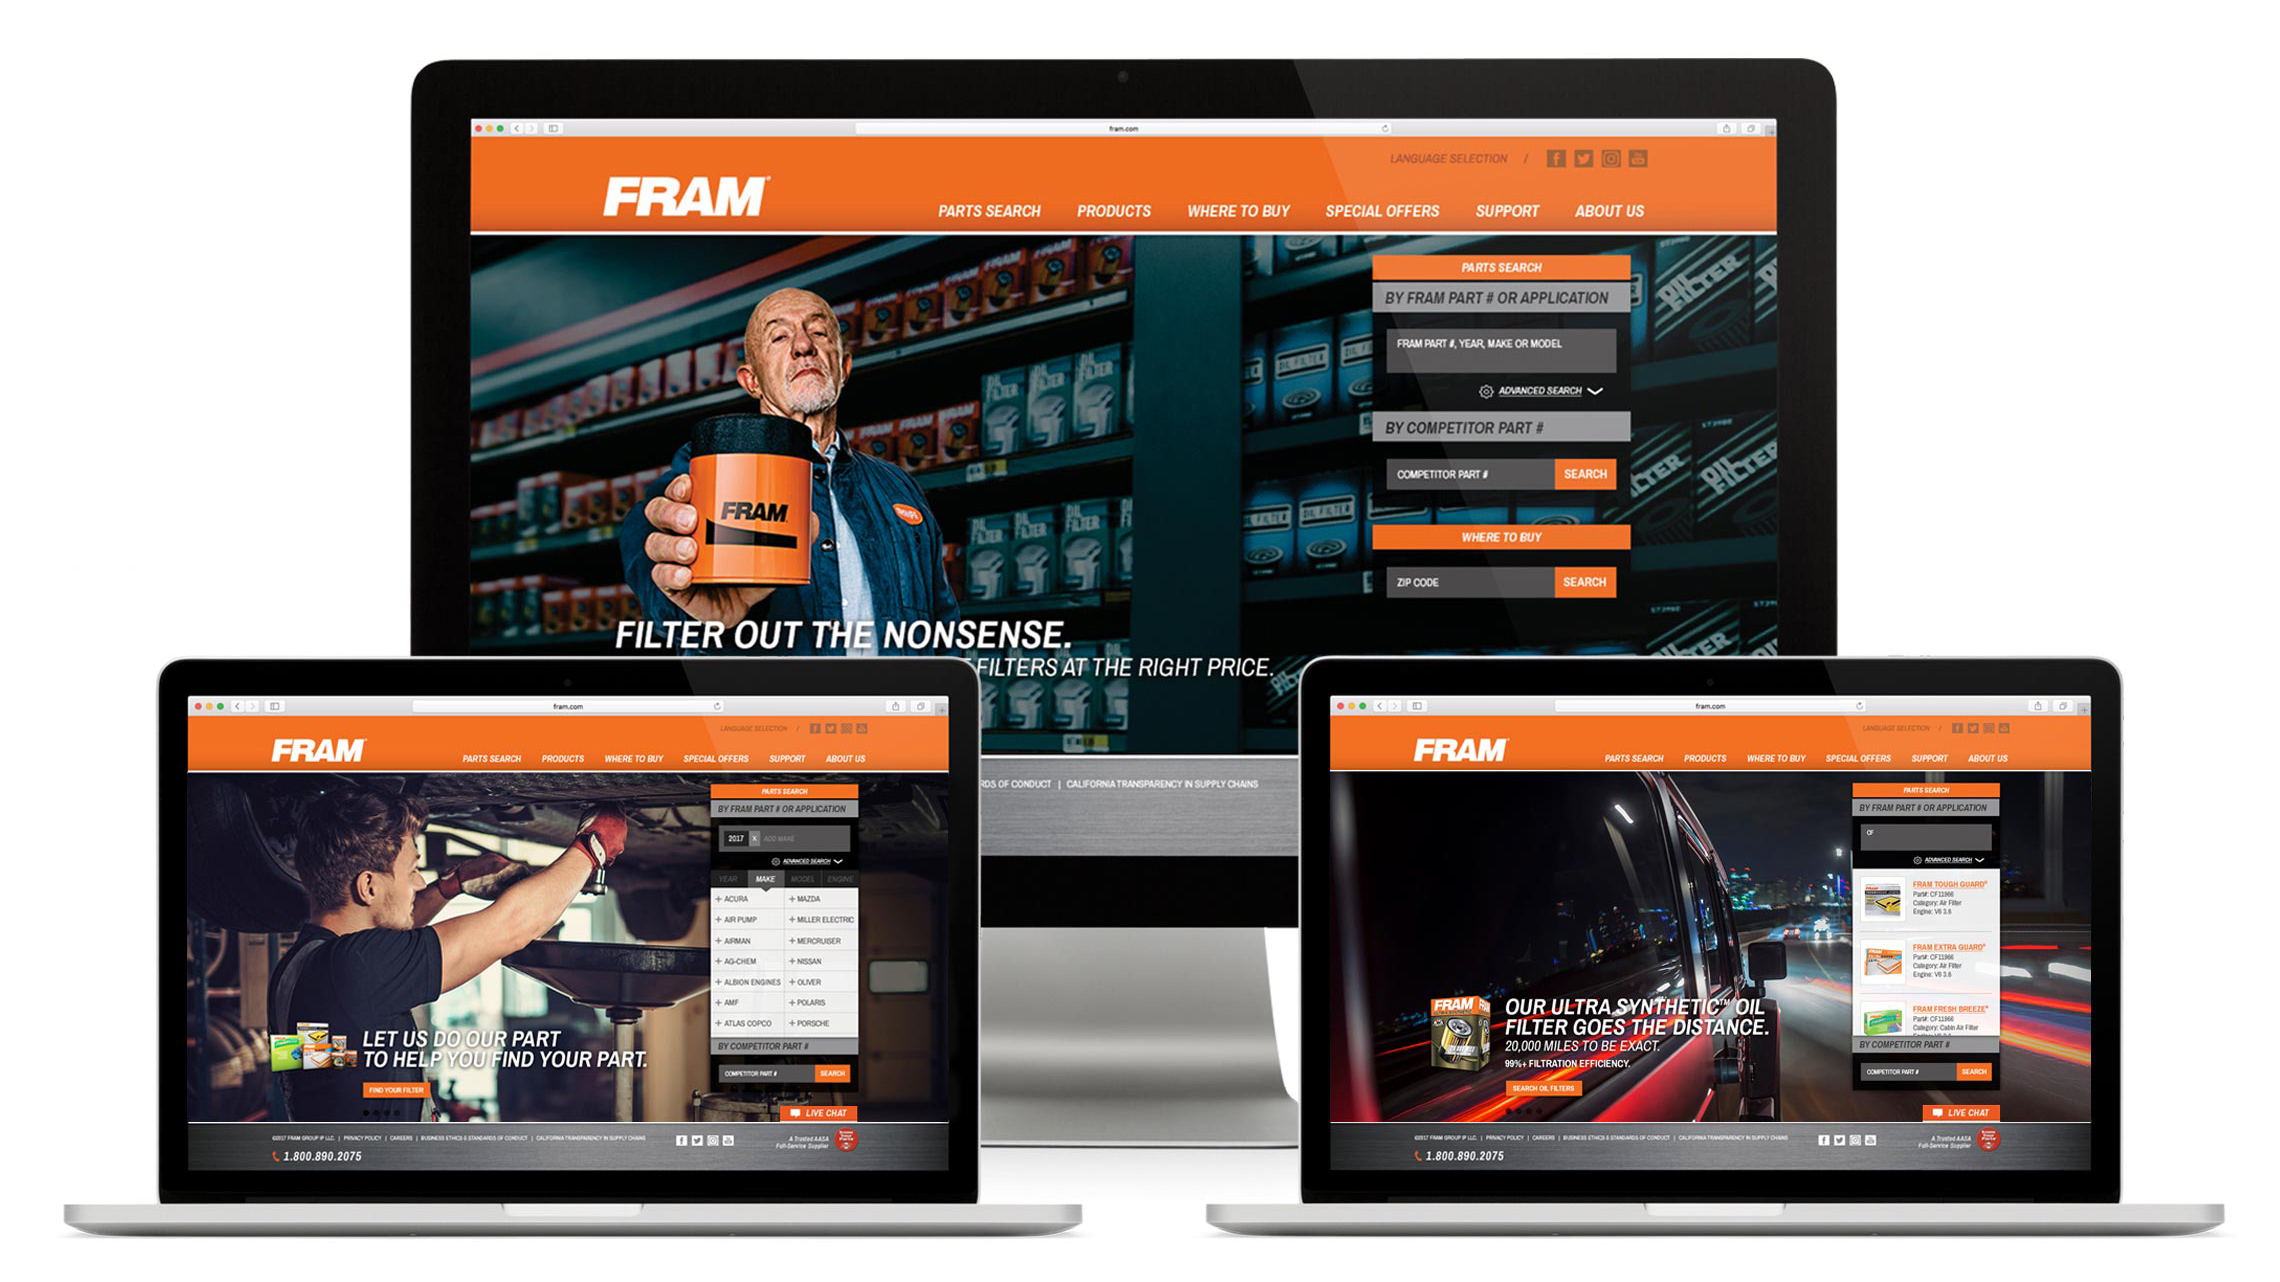 fram website image set 1